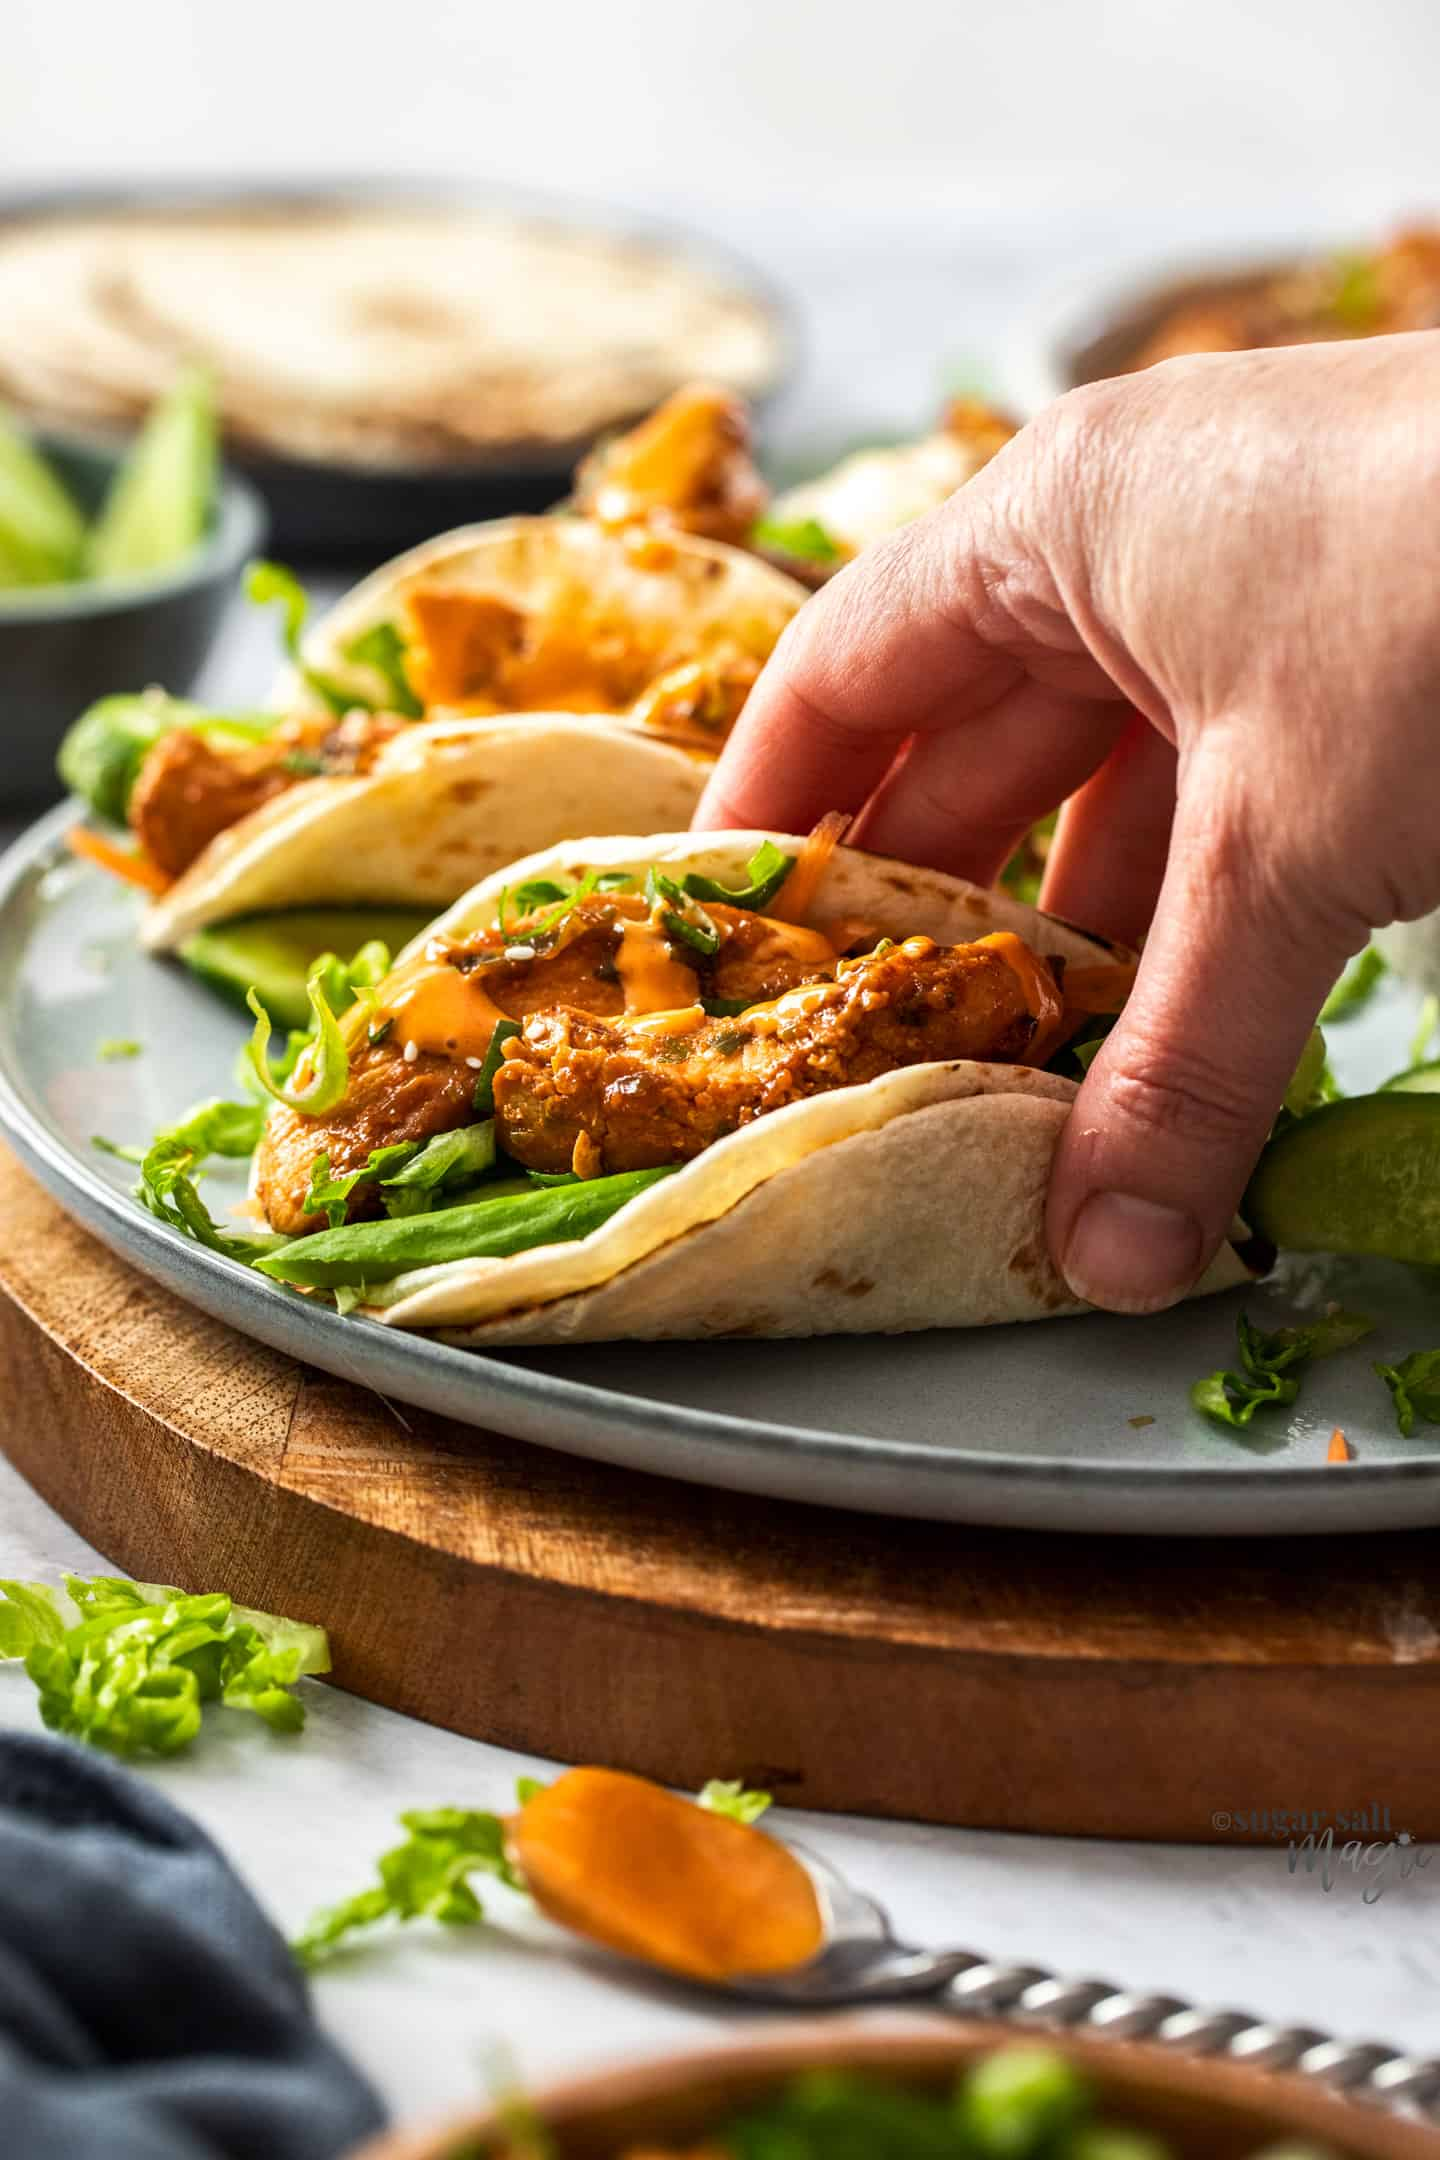 A hand grabbing a taco from a grey plate.